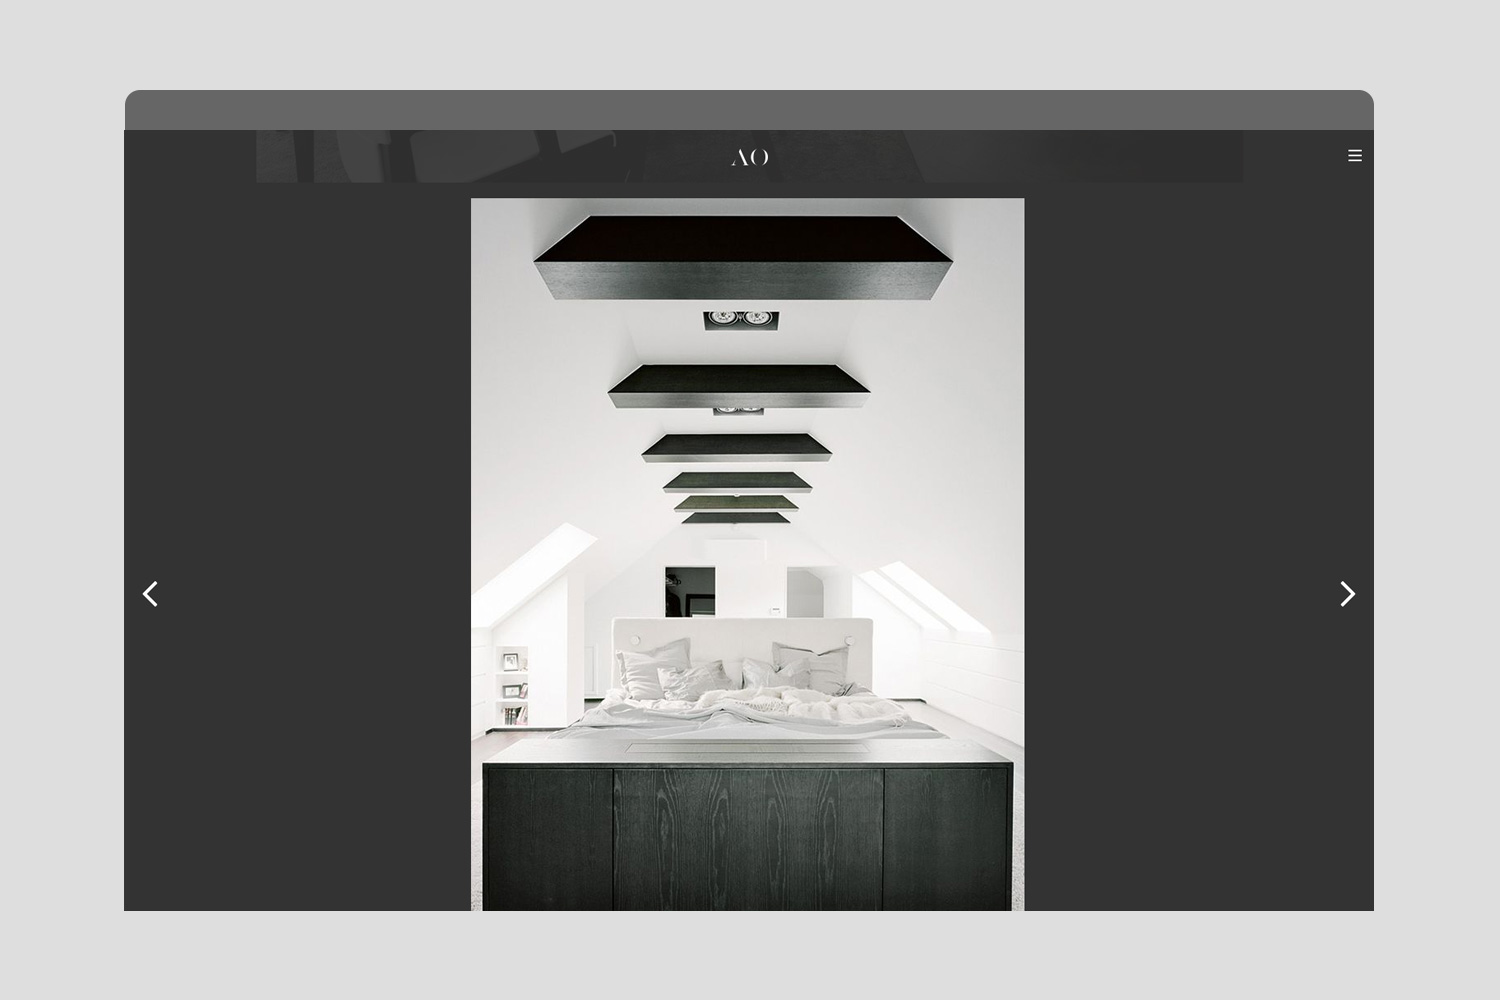 ao-interiors-web-design-astein-3